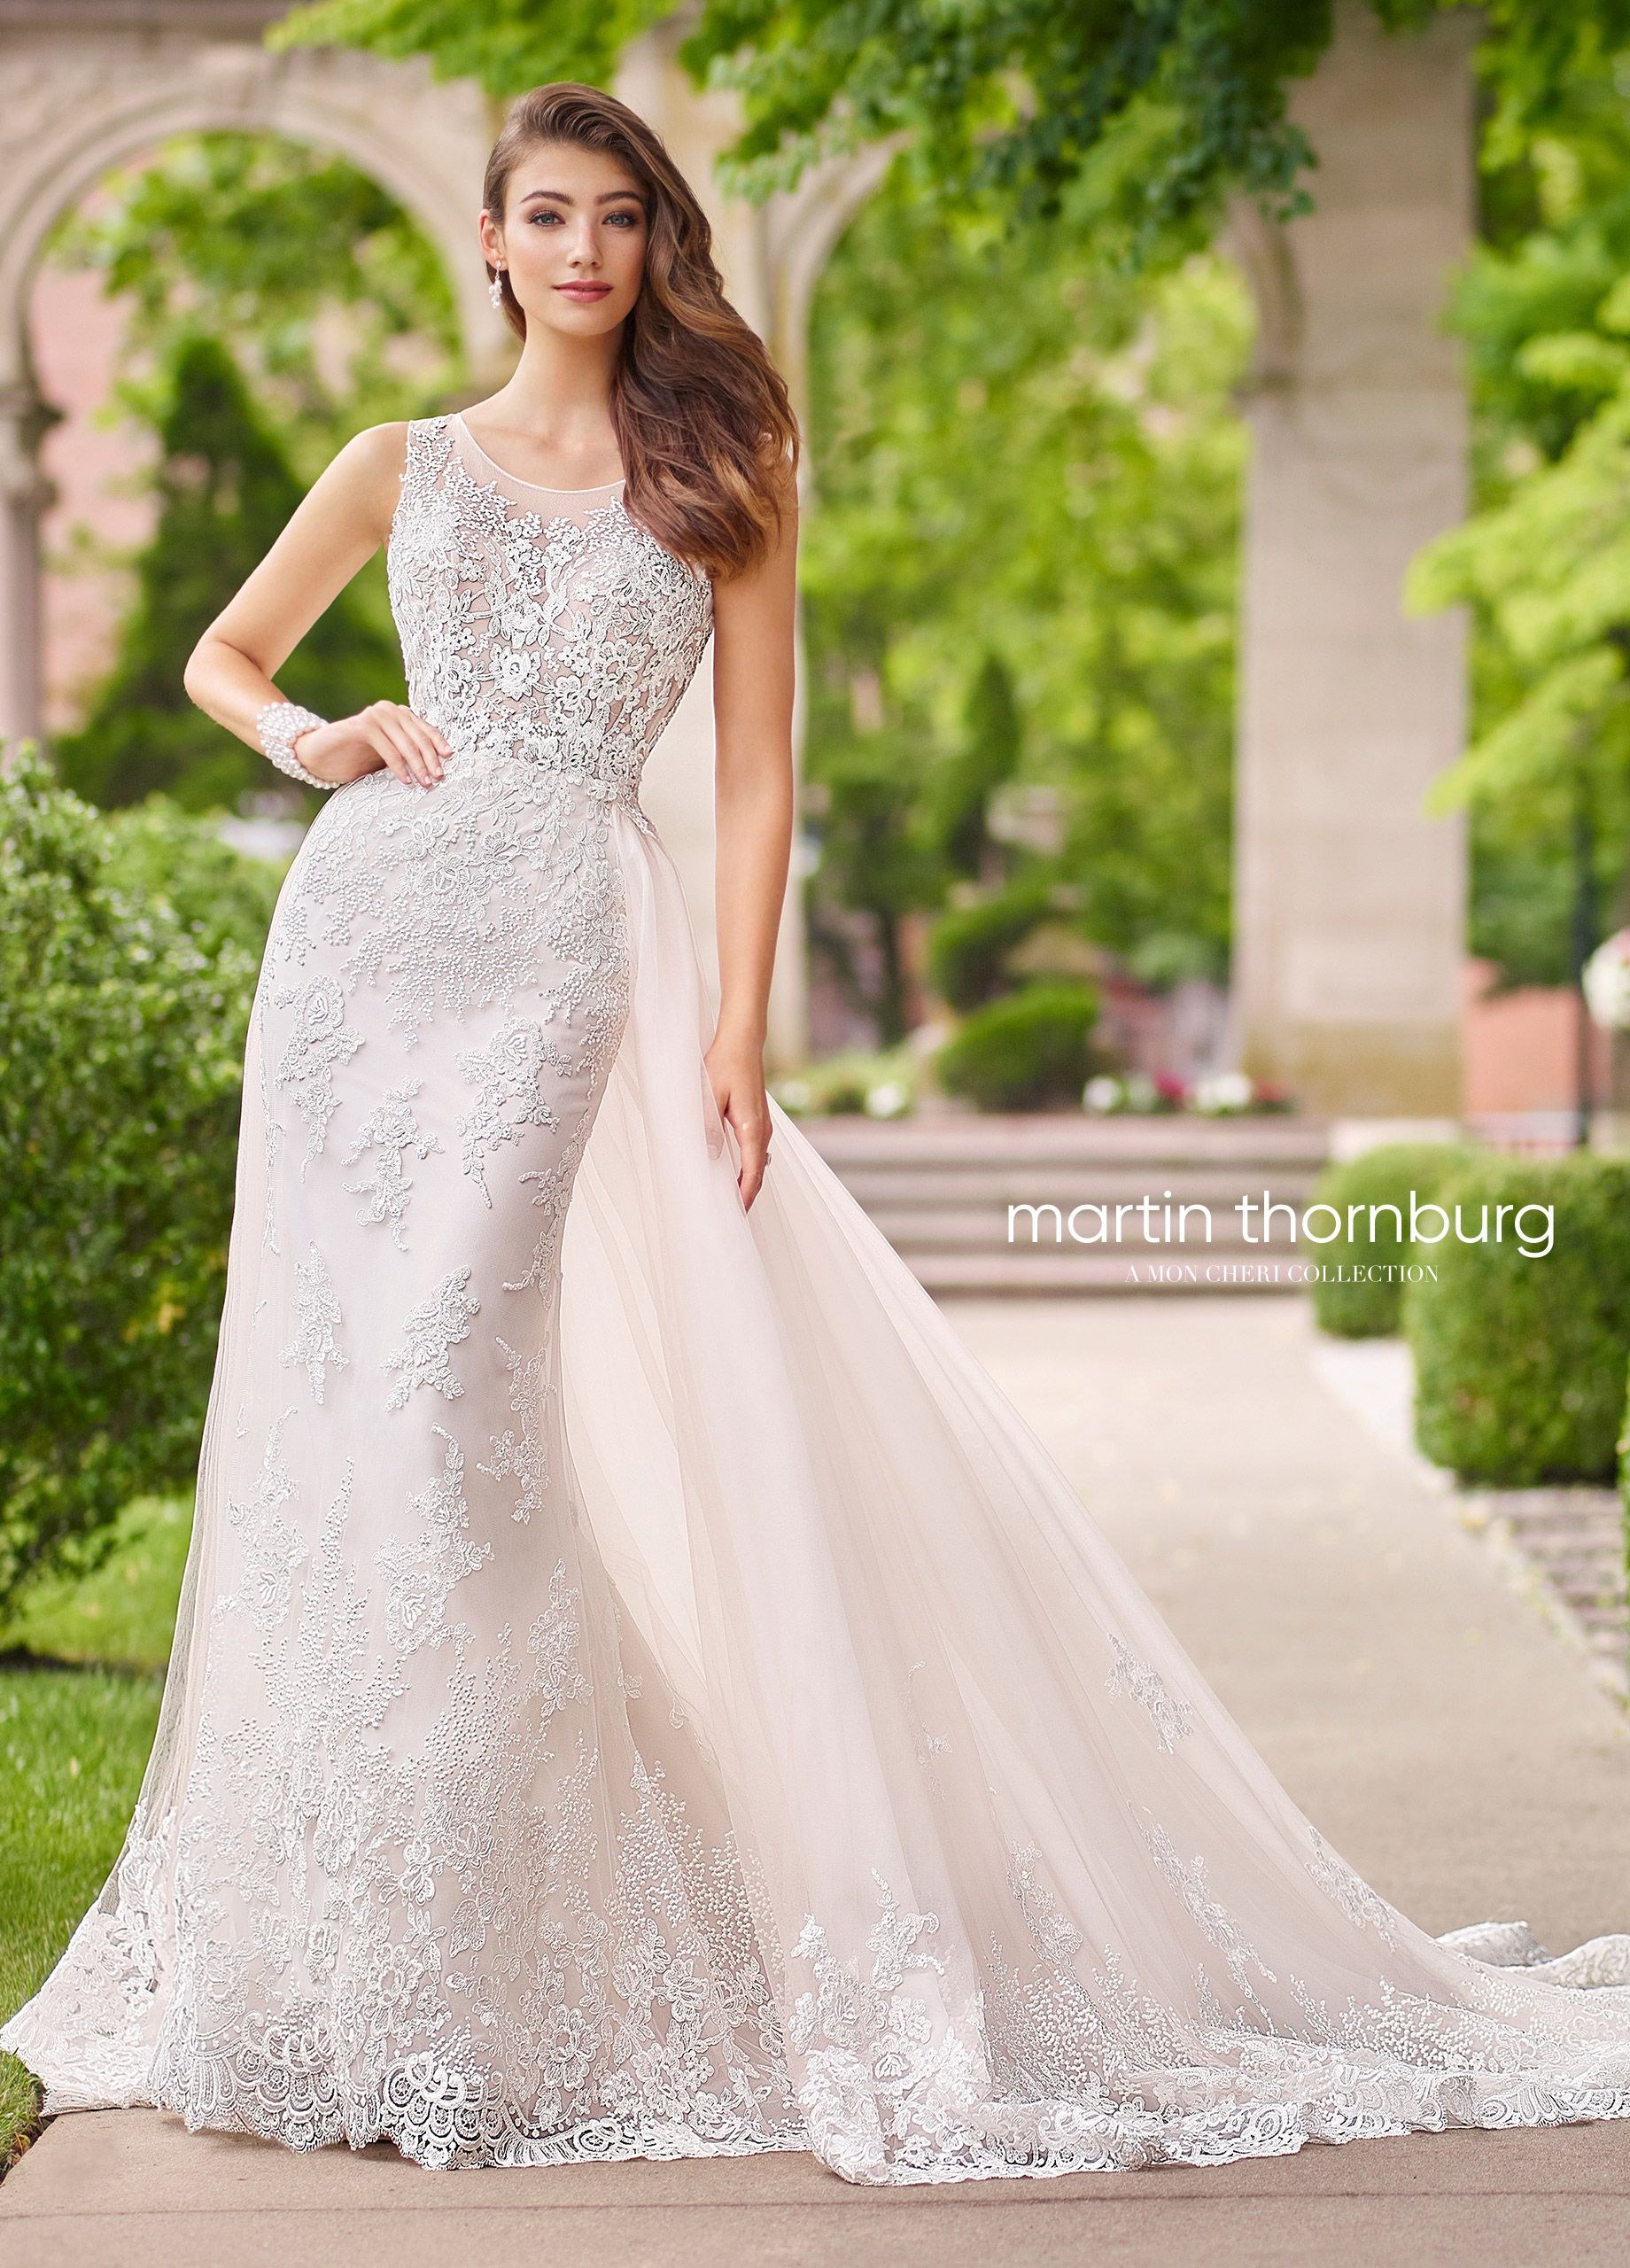 Sequined wedding dress  Piece Allover Lace u Sequin Wedding Dress  Nera  Wedding